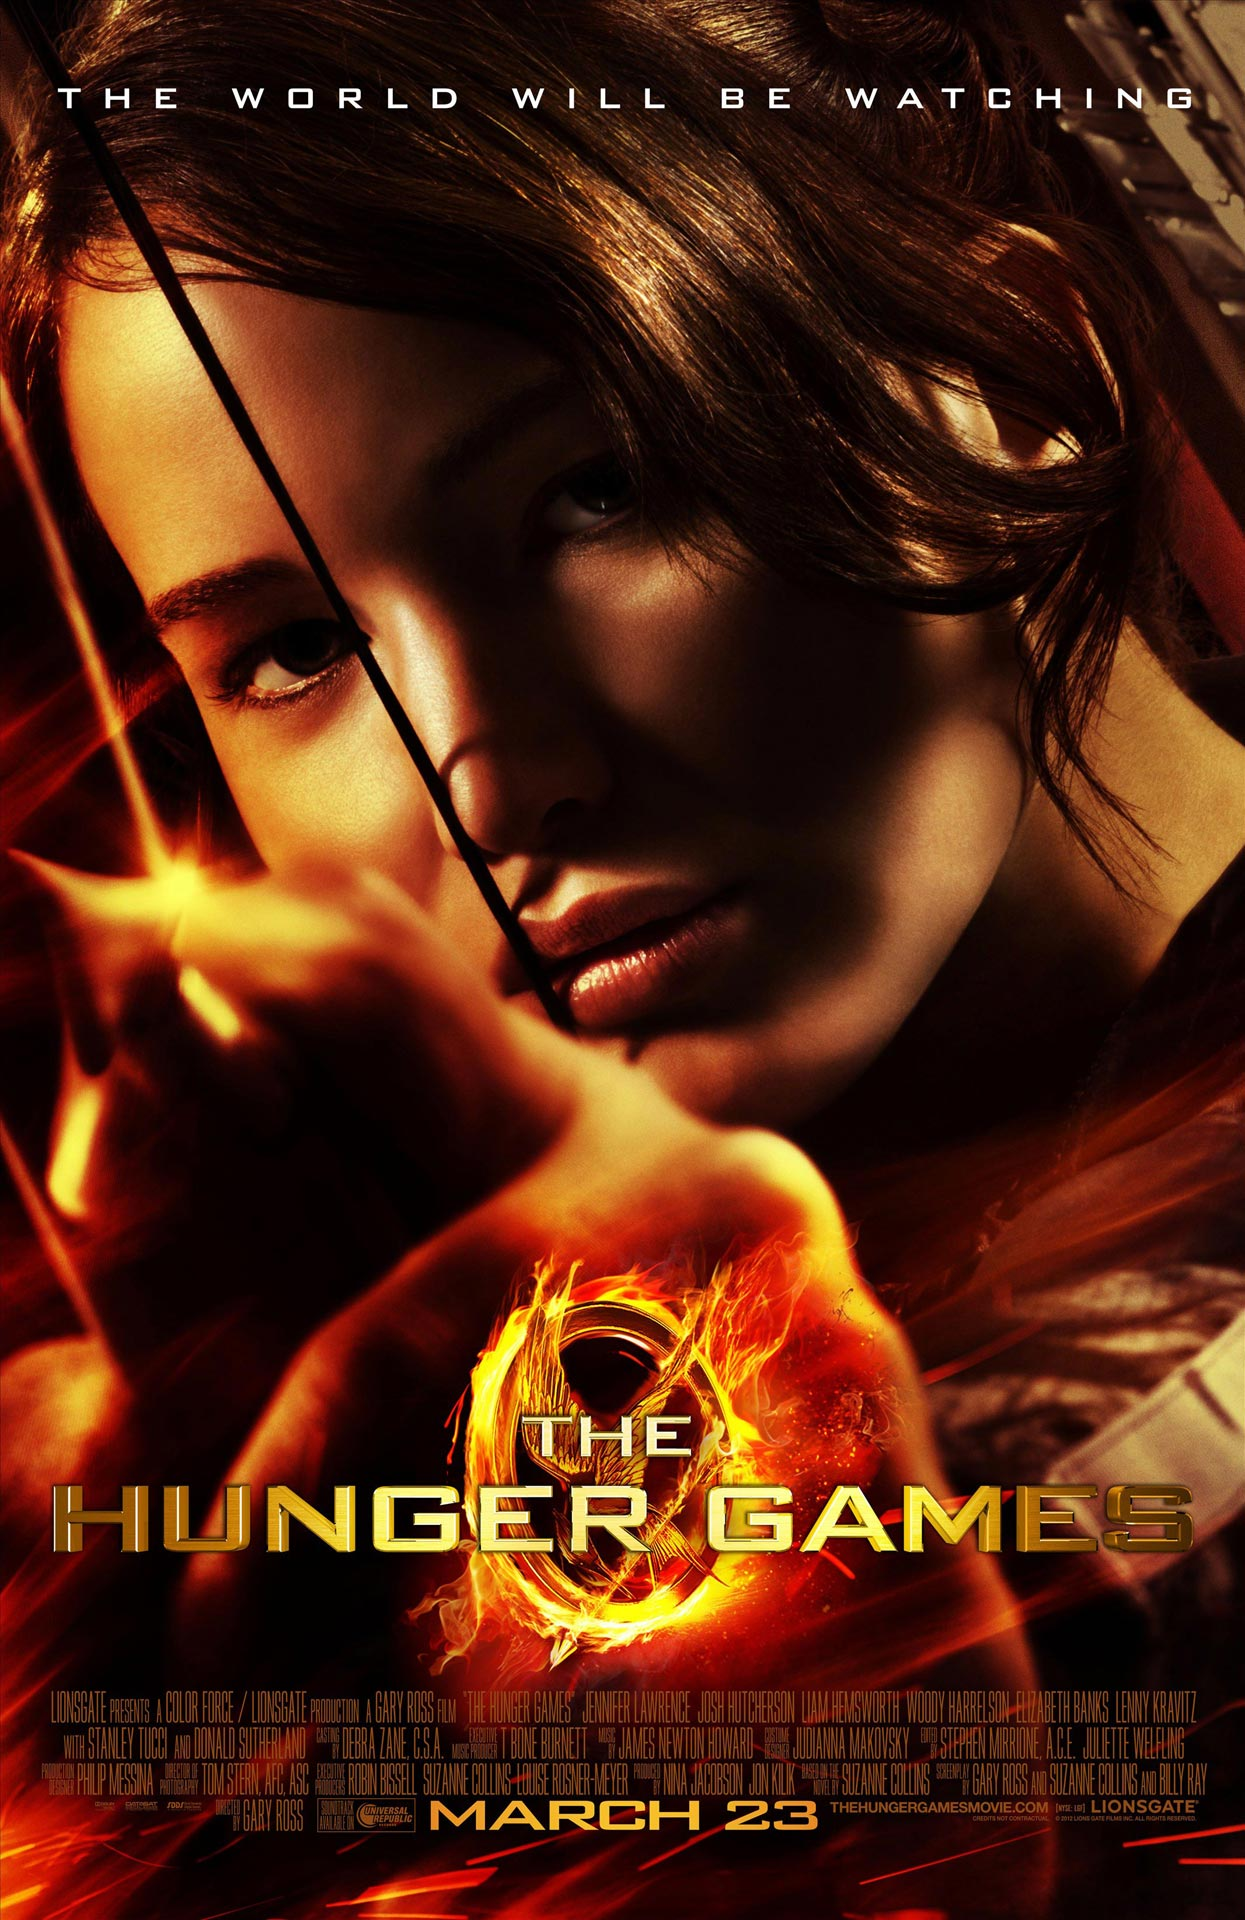 The Hunger Games Red Carpet Premiere Live Stream